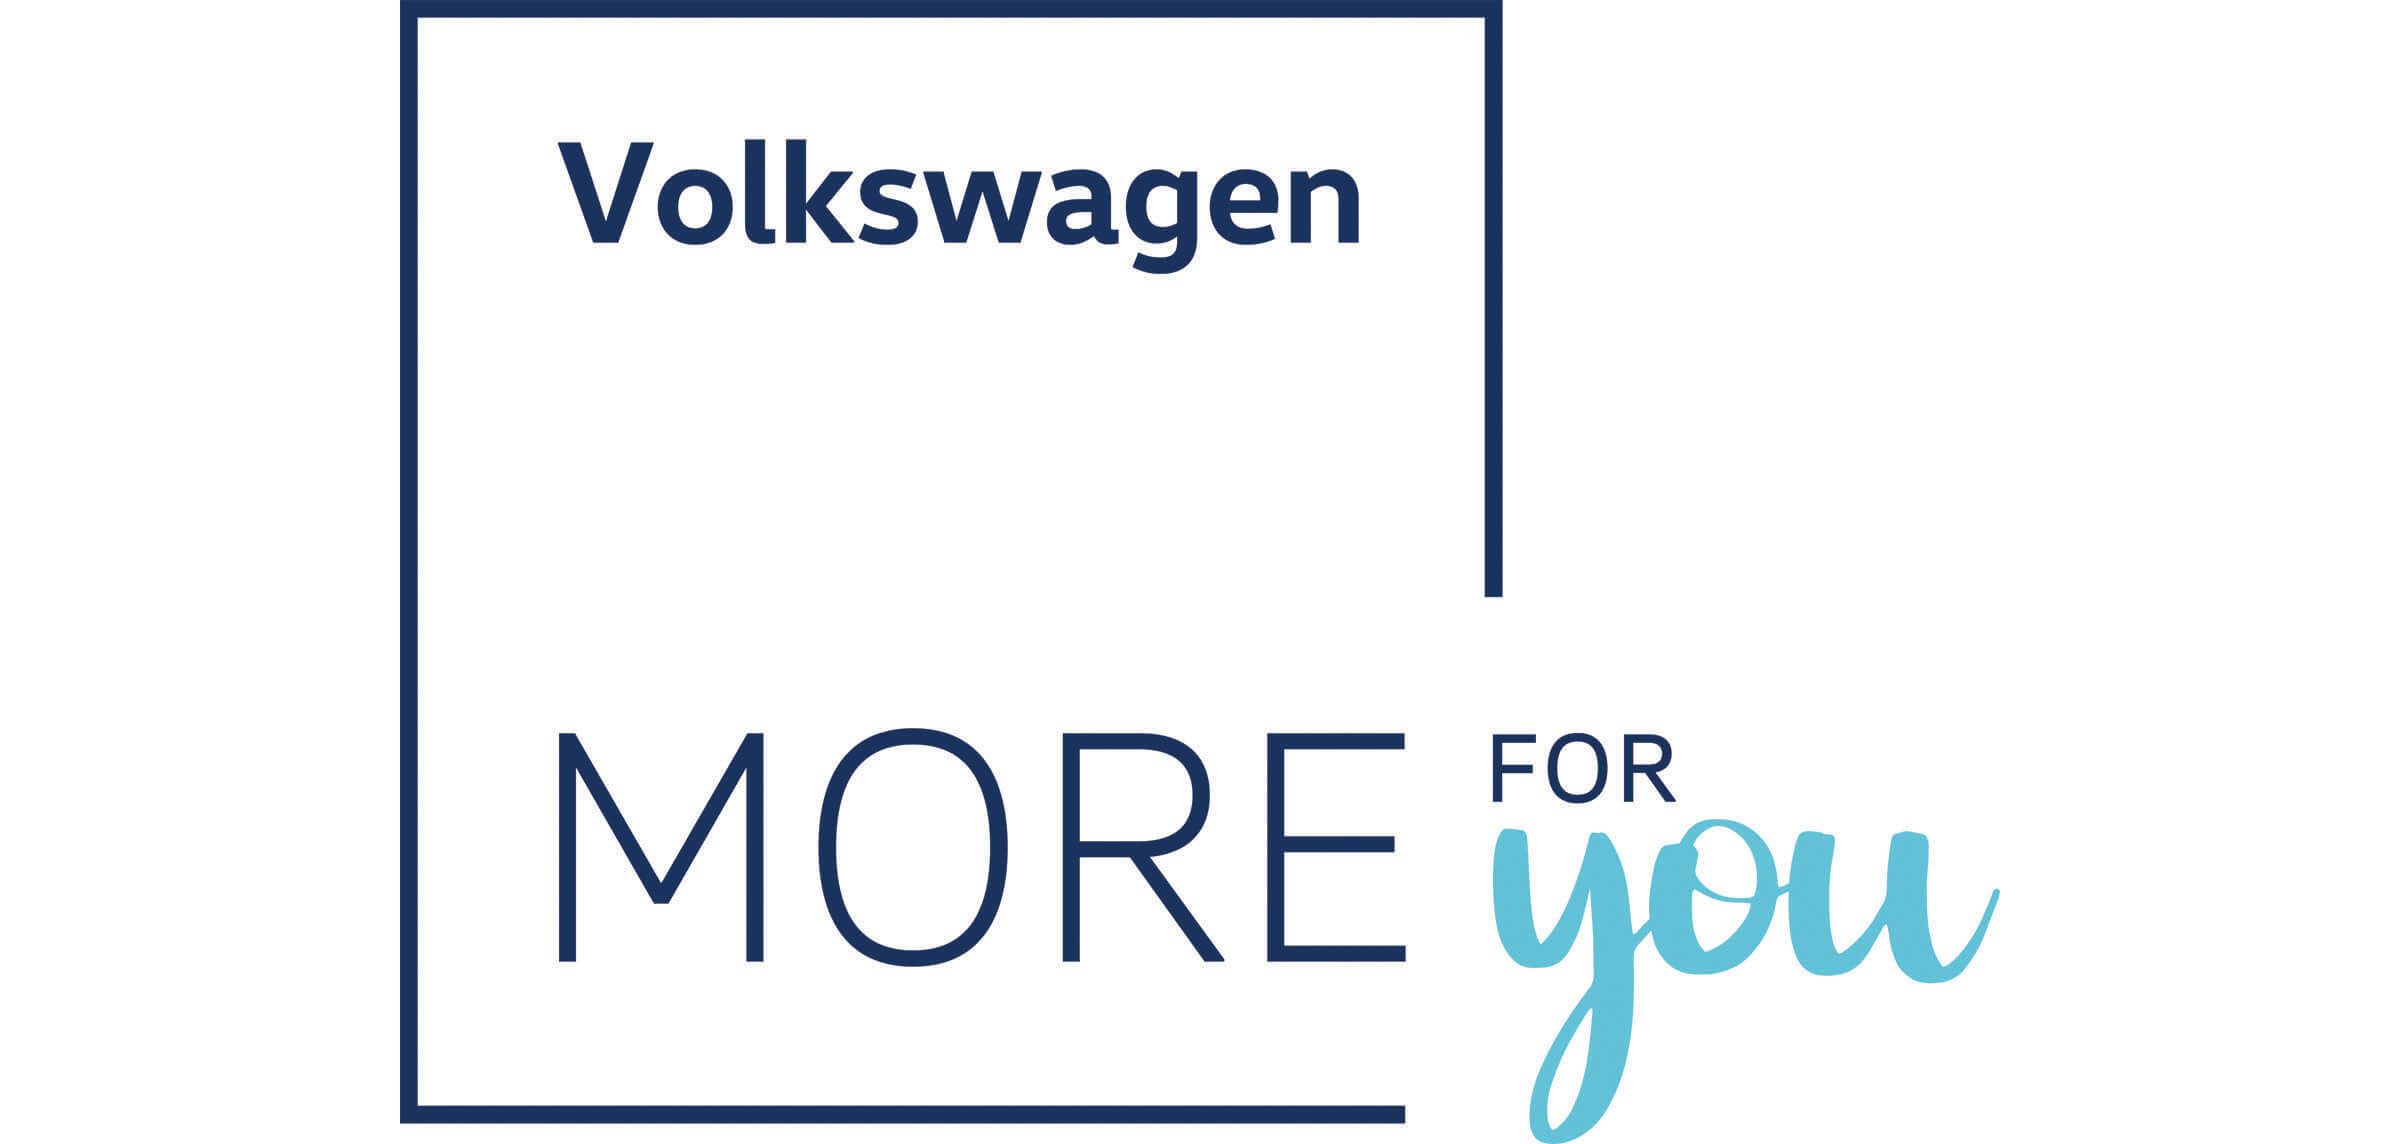 Volkswagen more for you logo